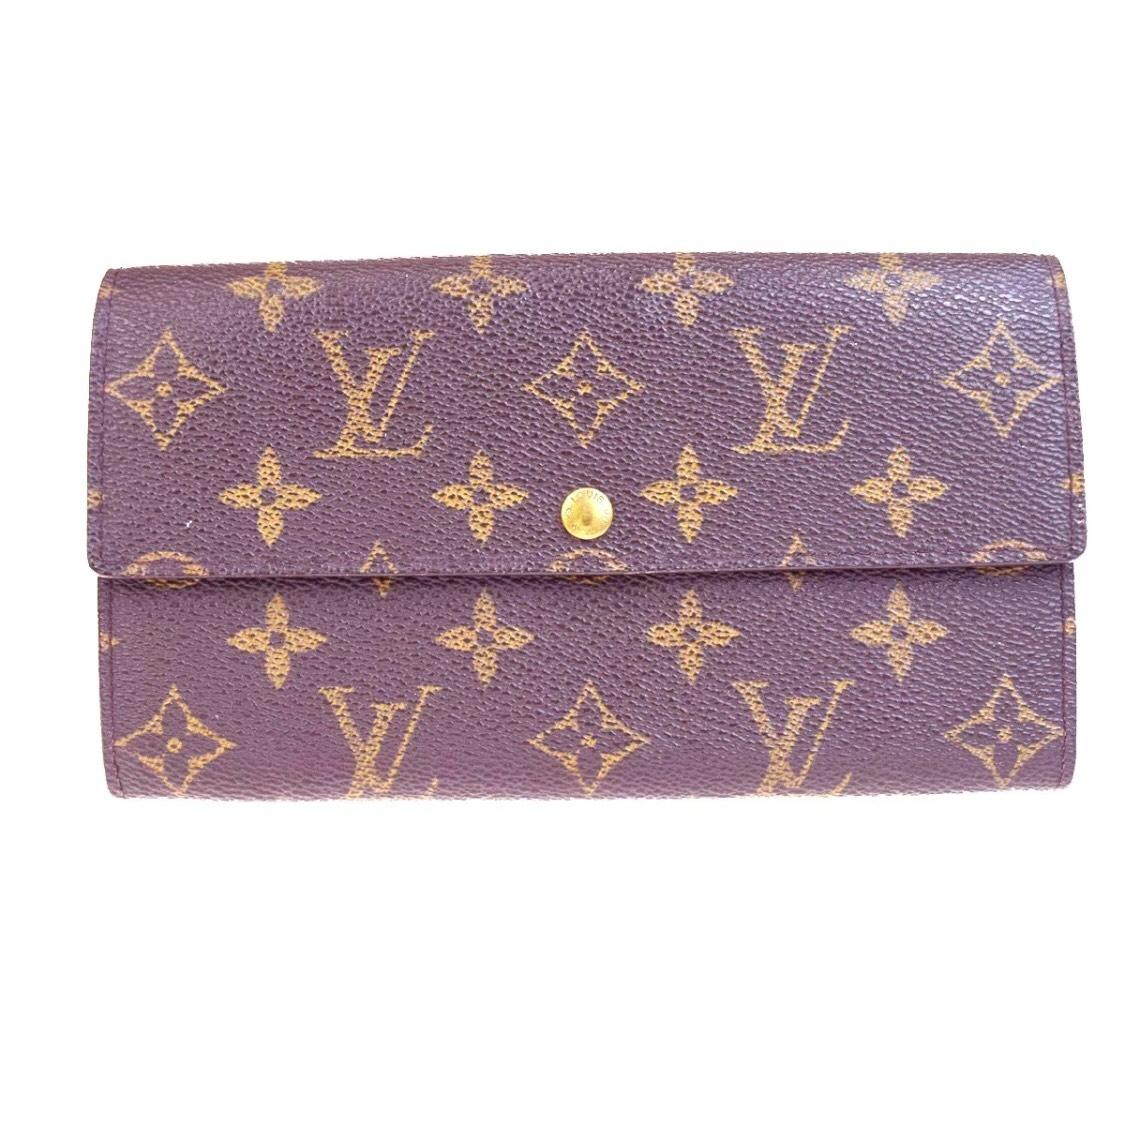 how to tell authentic louis vuitton wallet